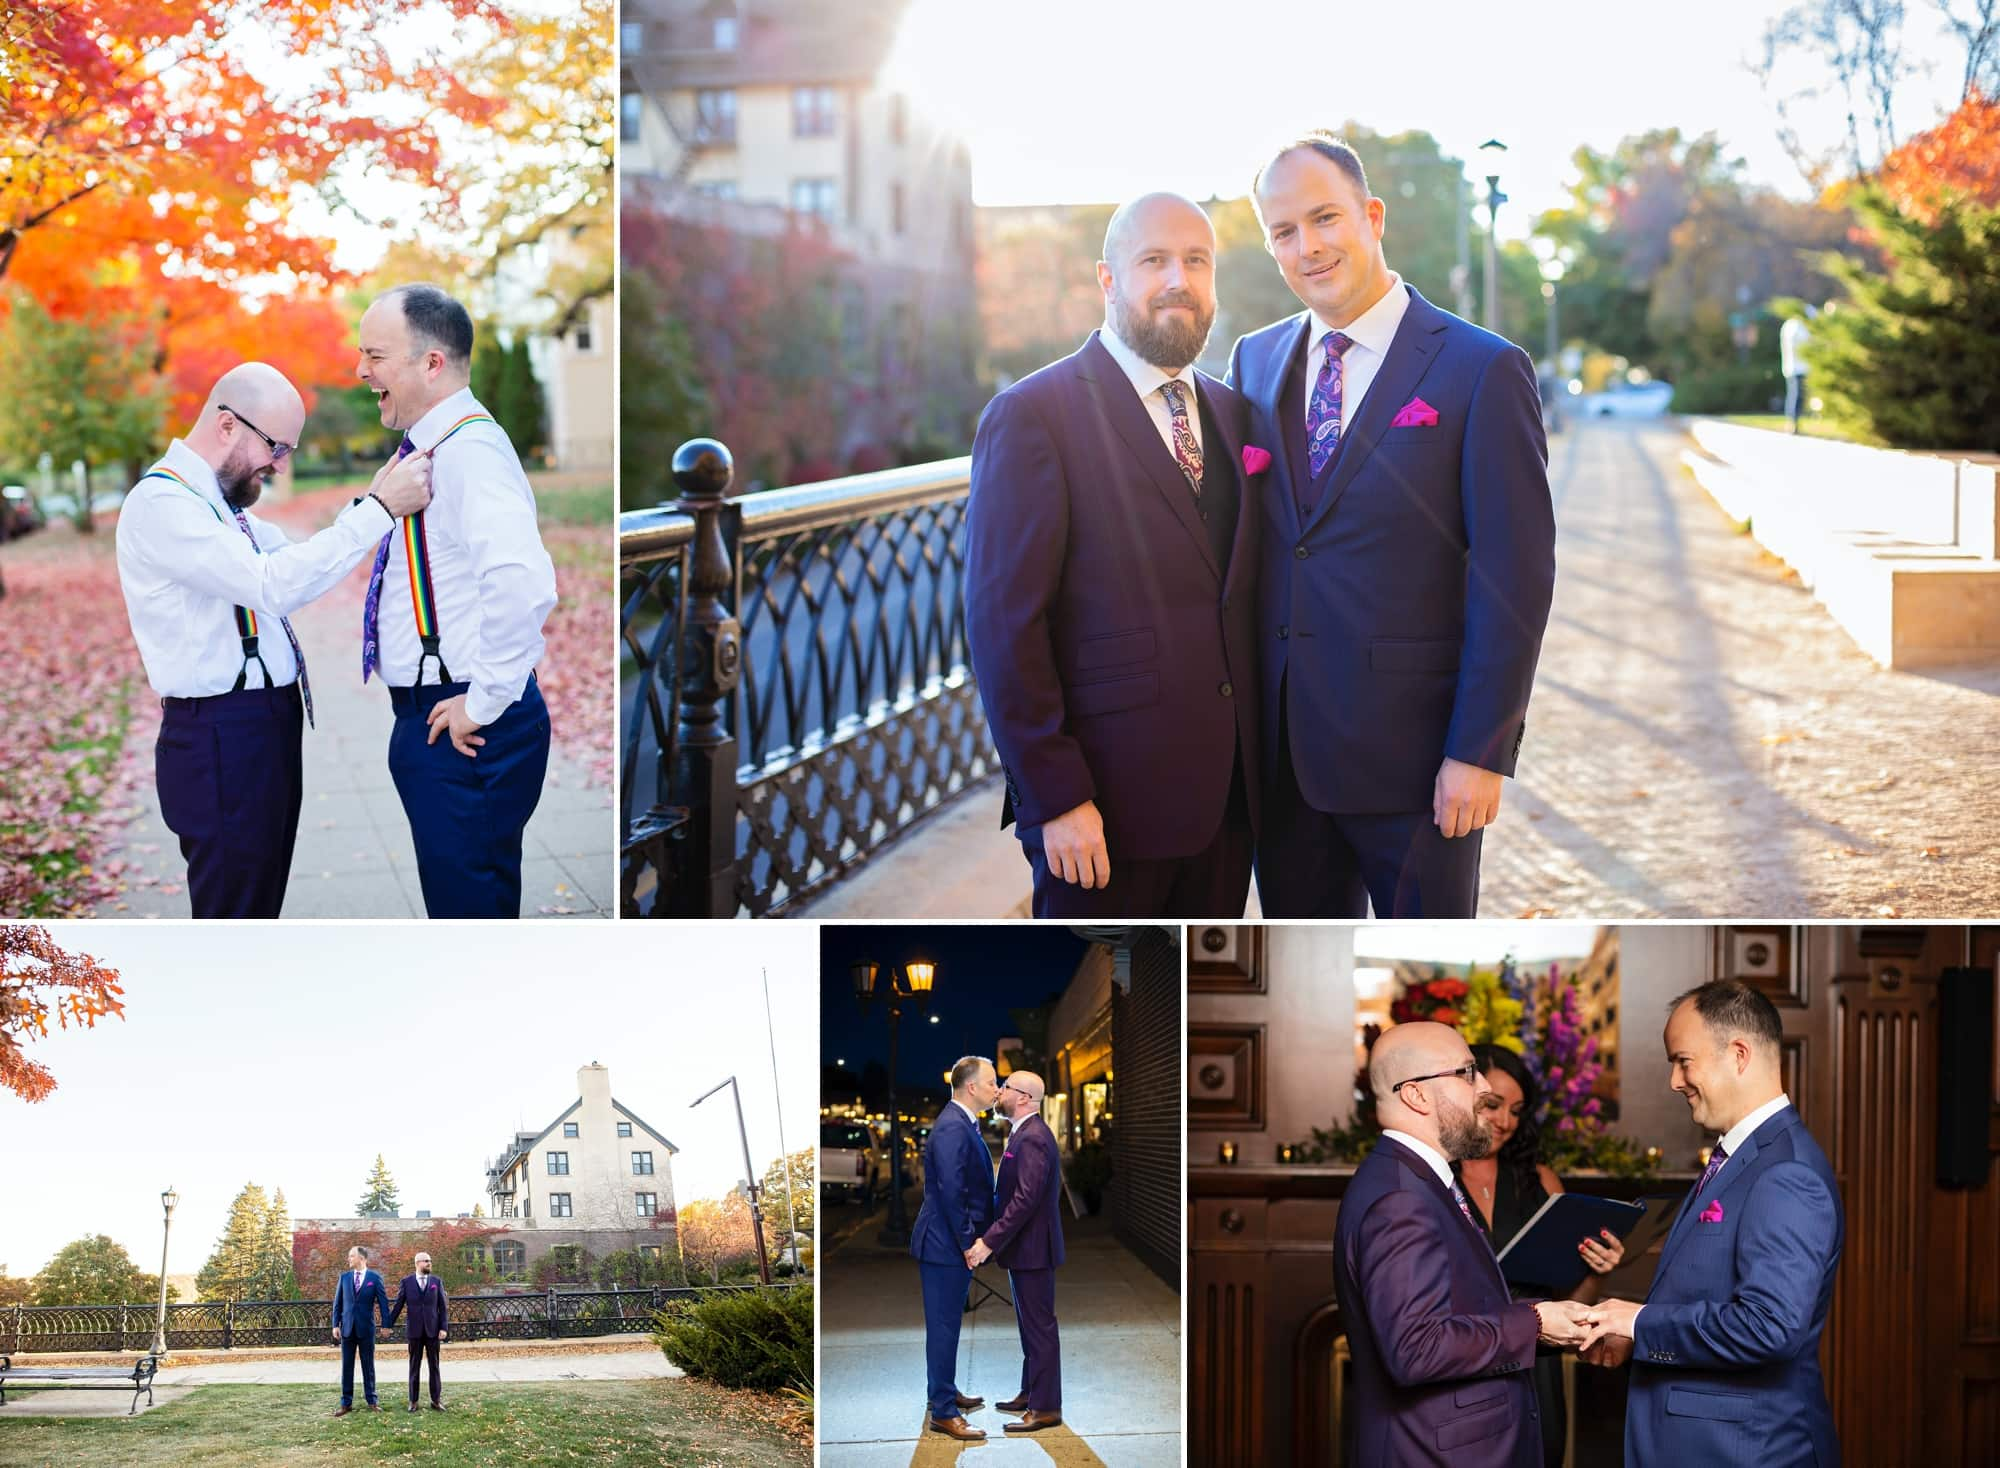 Gallery of Eric and Michael's autumn wedding ceremony in St. Paul, Minnesota.